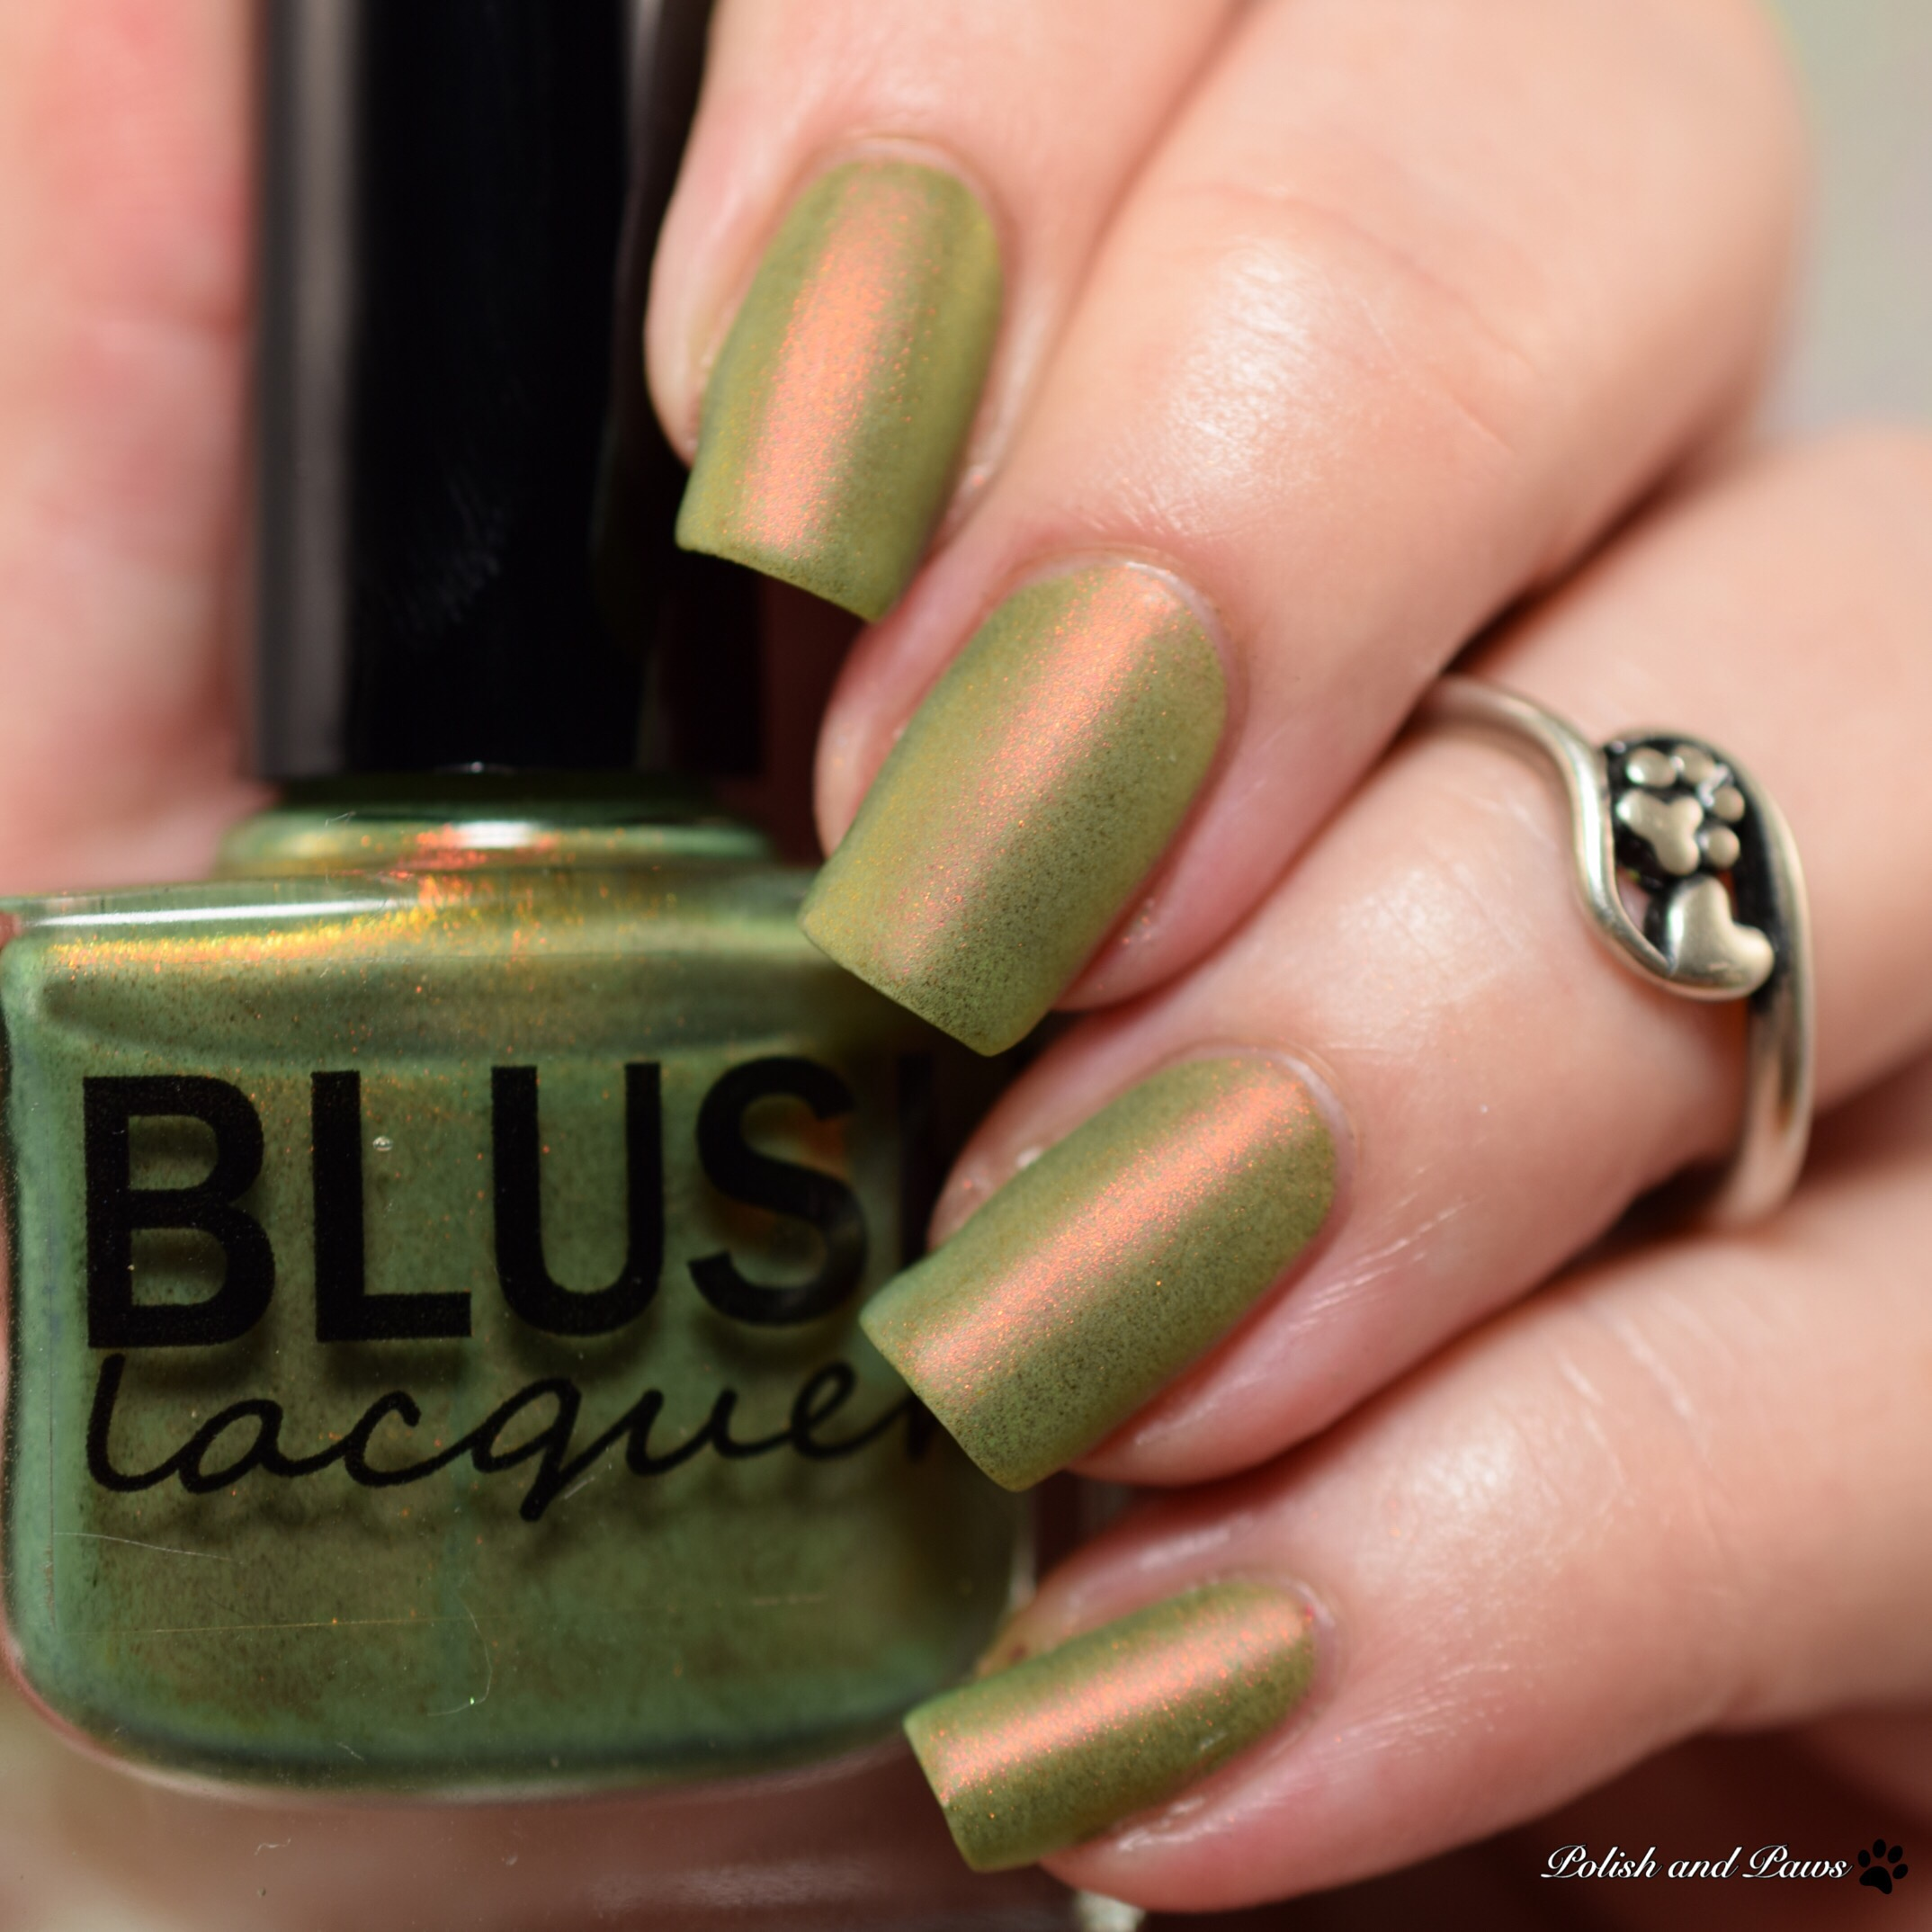 Blush Lacquers Matterial Girl Matte Top Coat | Polish and Paws